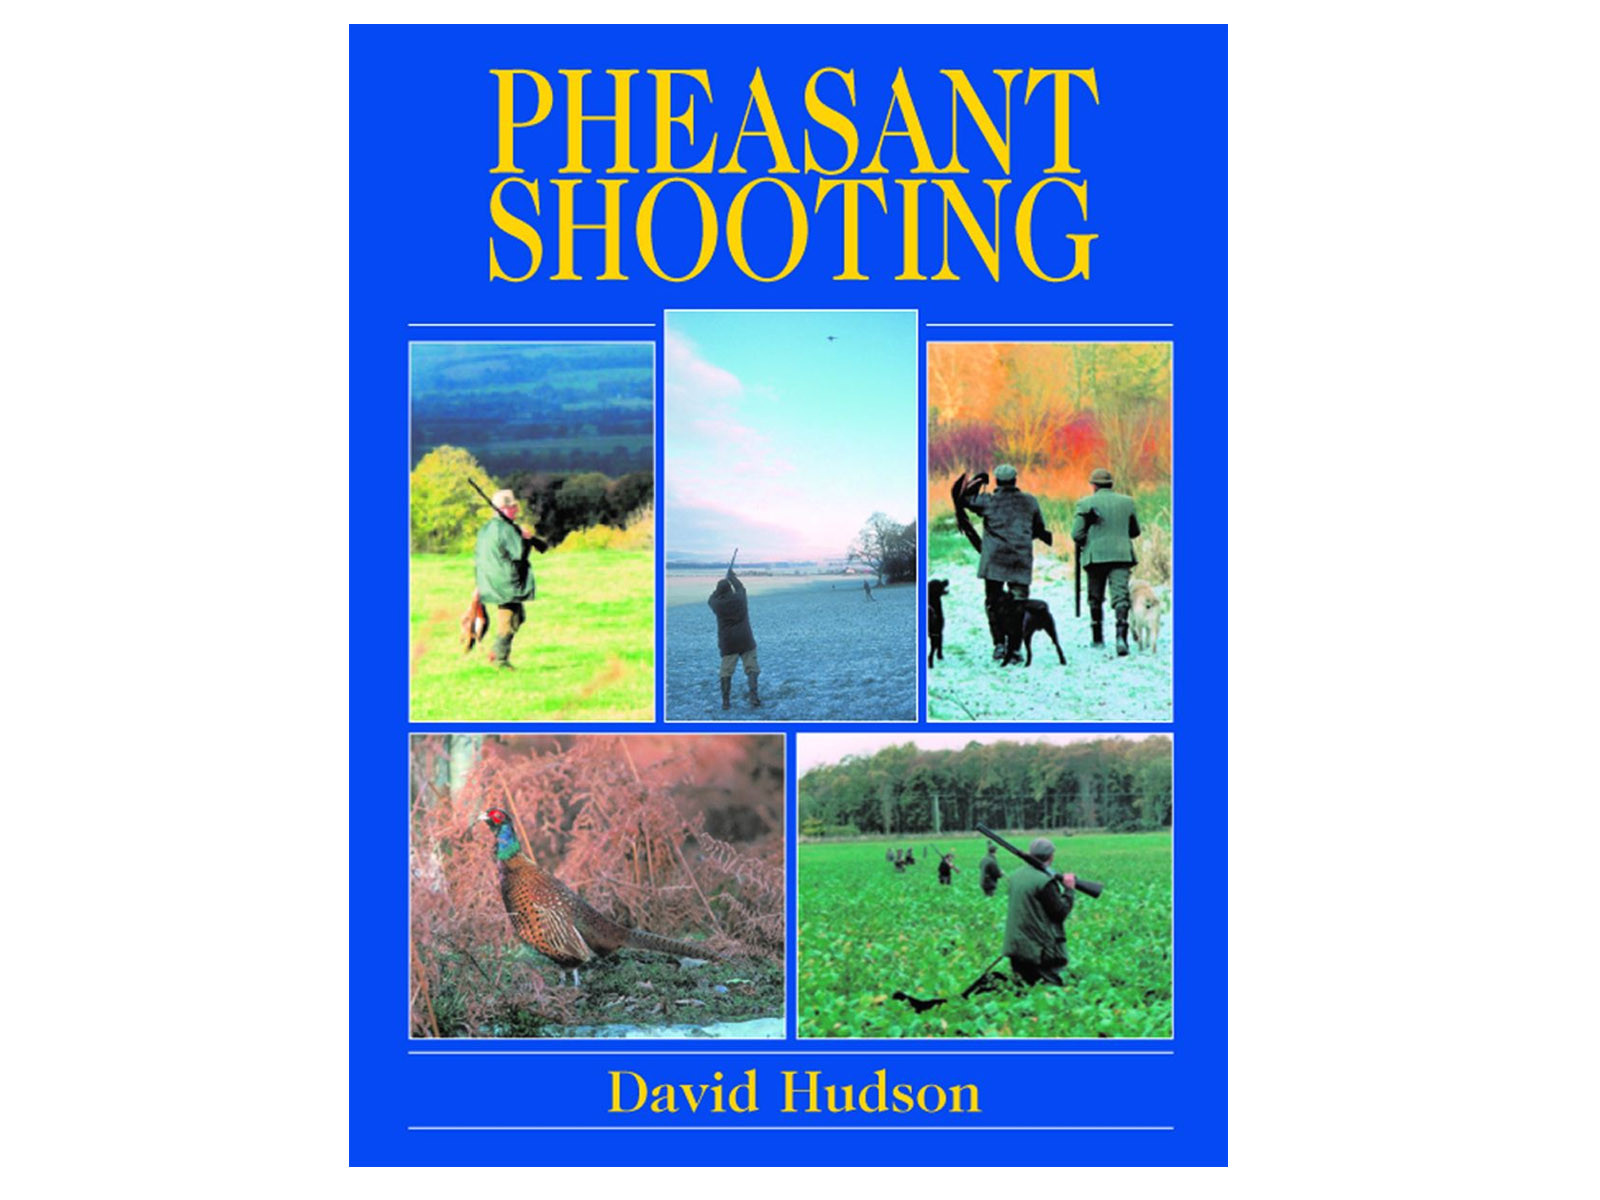 Pheasant Shooting